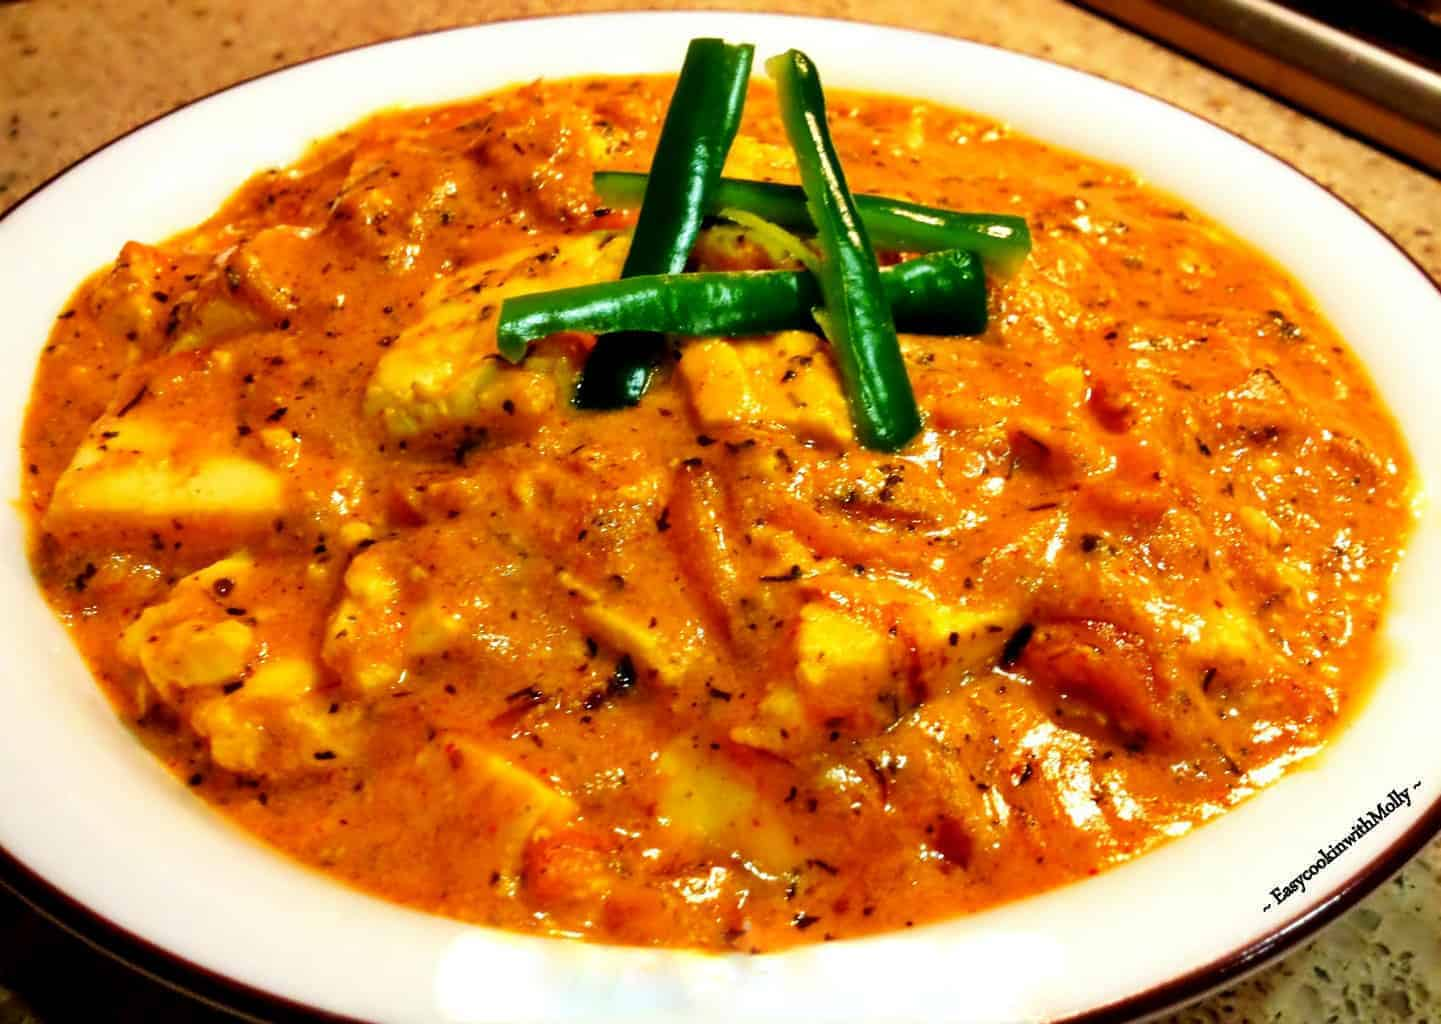 dahi methi paneer recipe is an Indian cottage cheese curry recipe